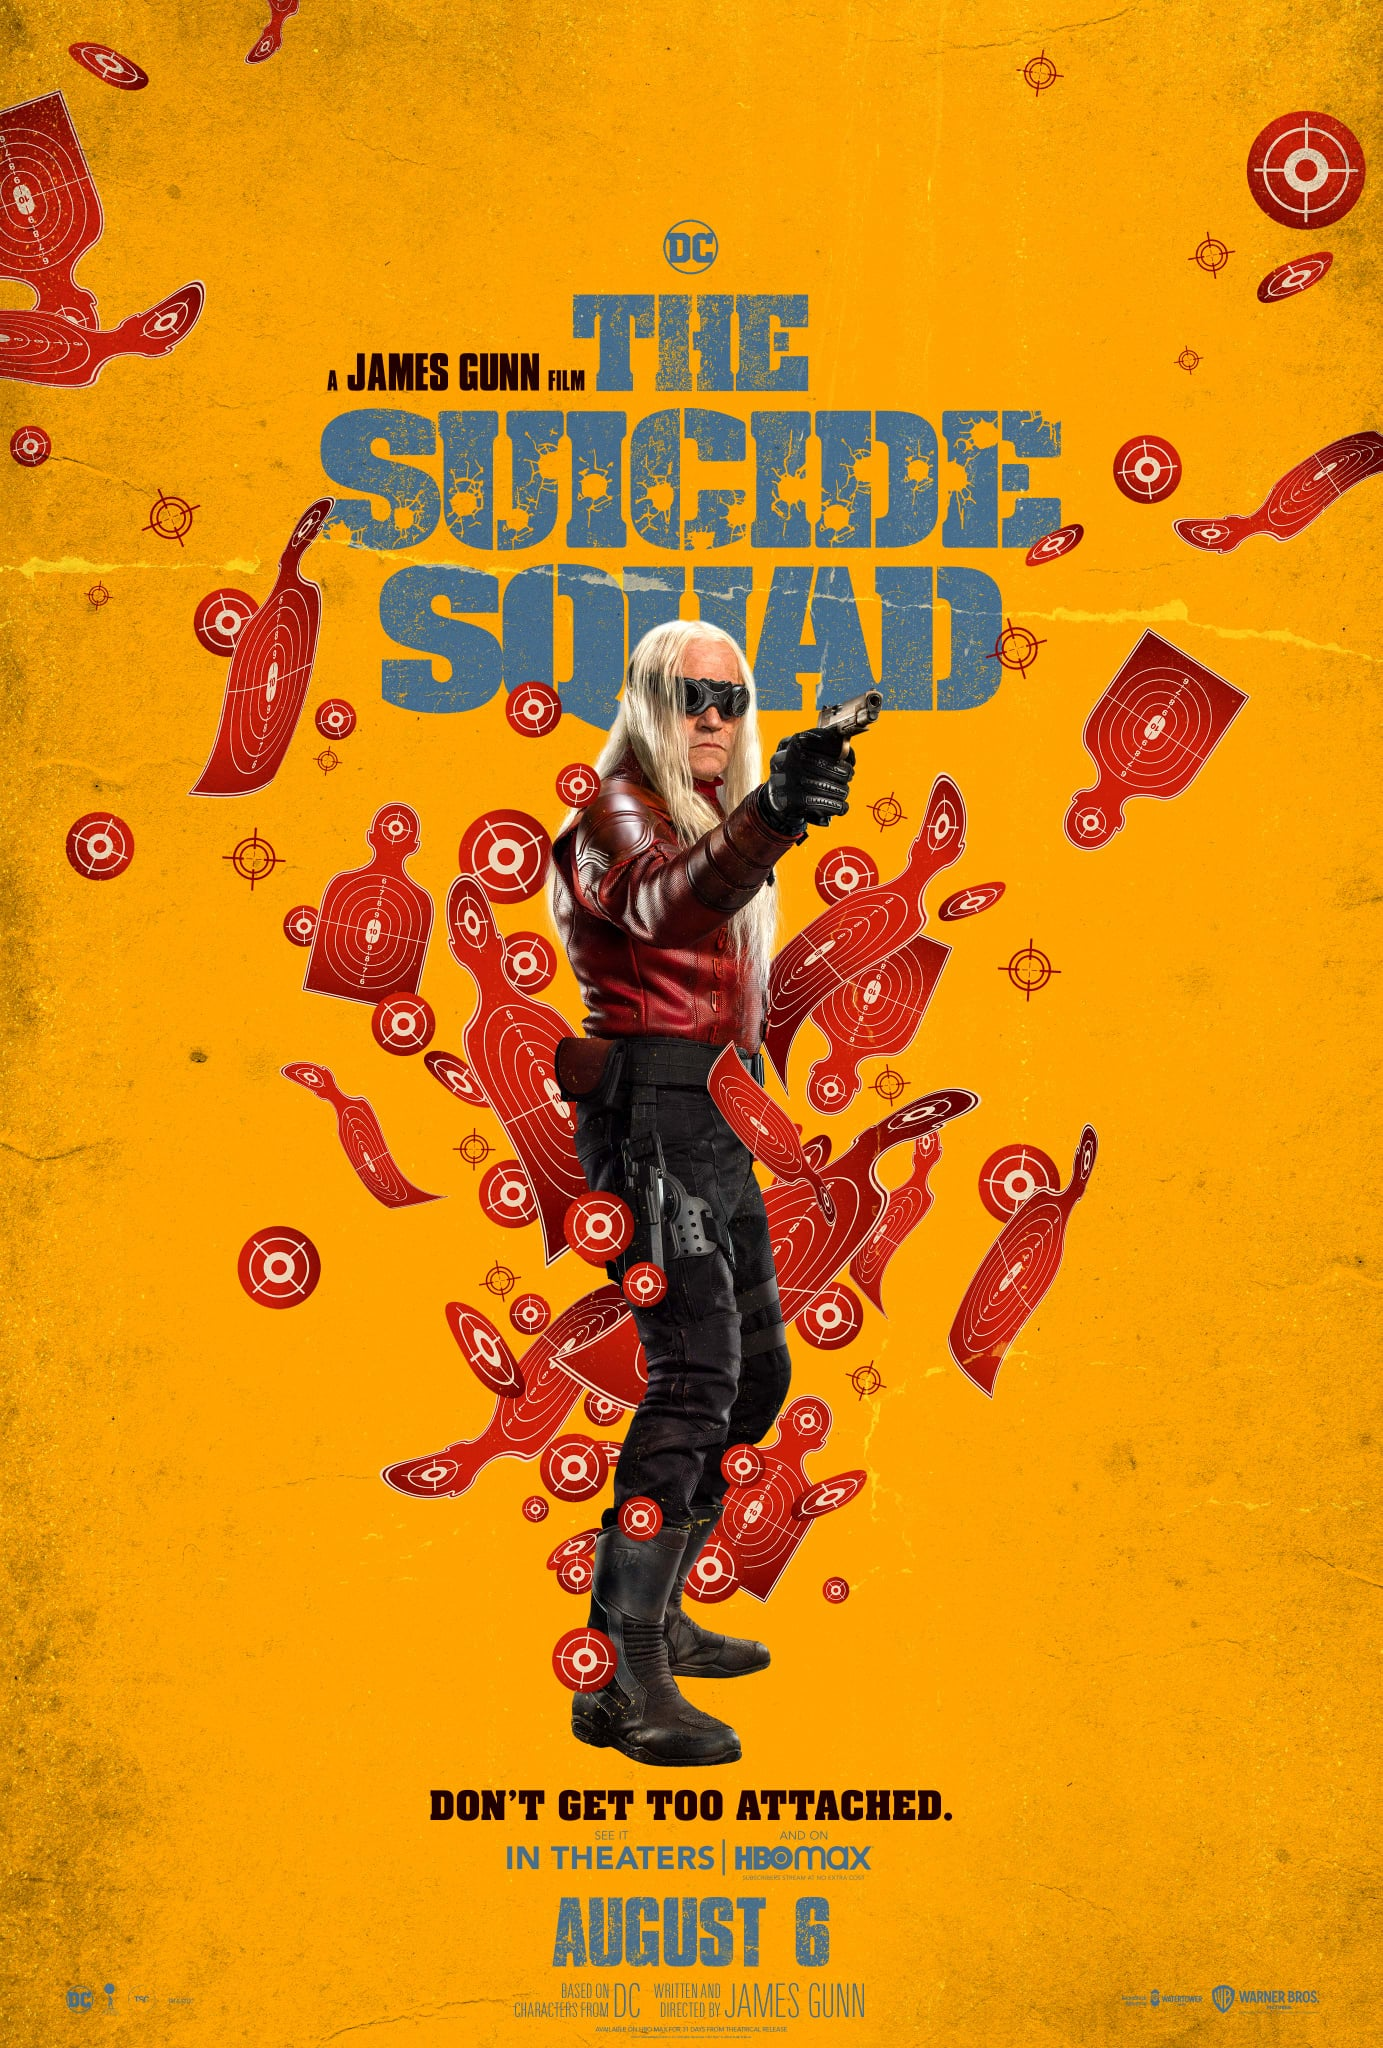 The Suicide Squad character poster